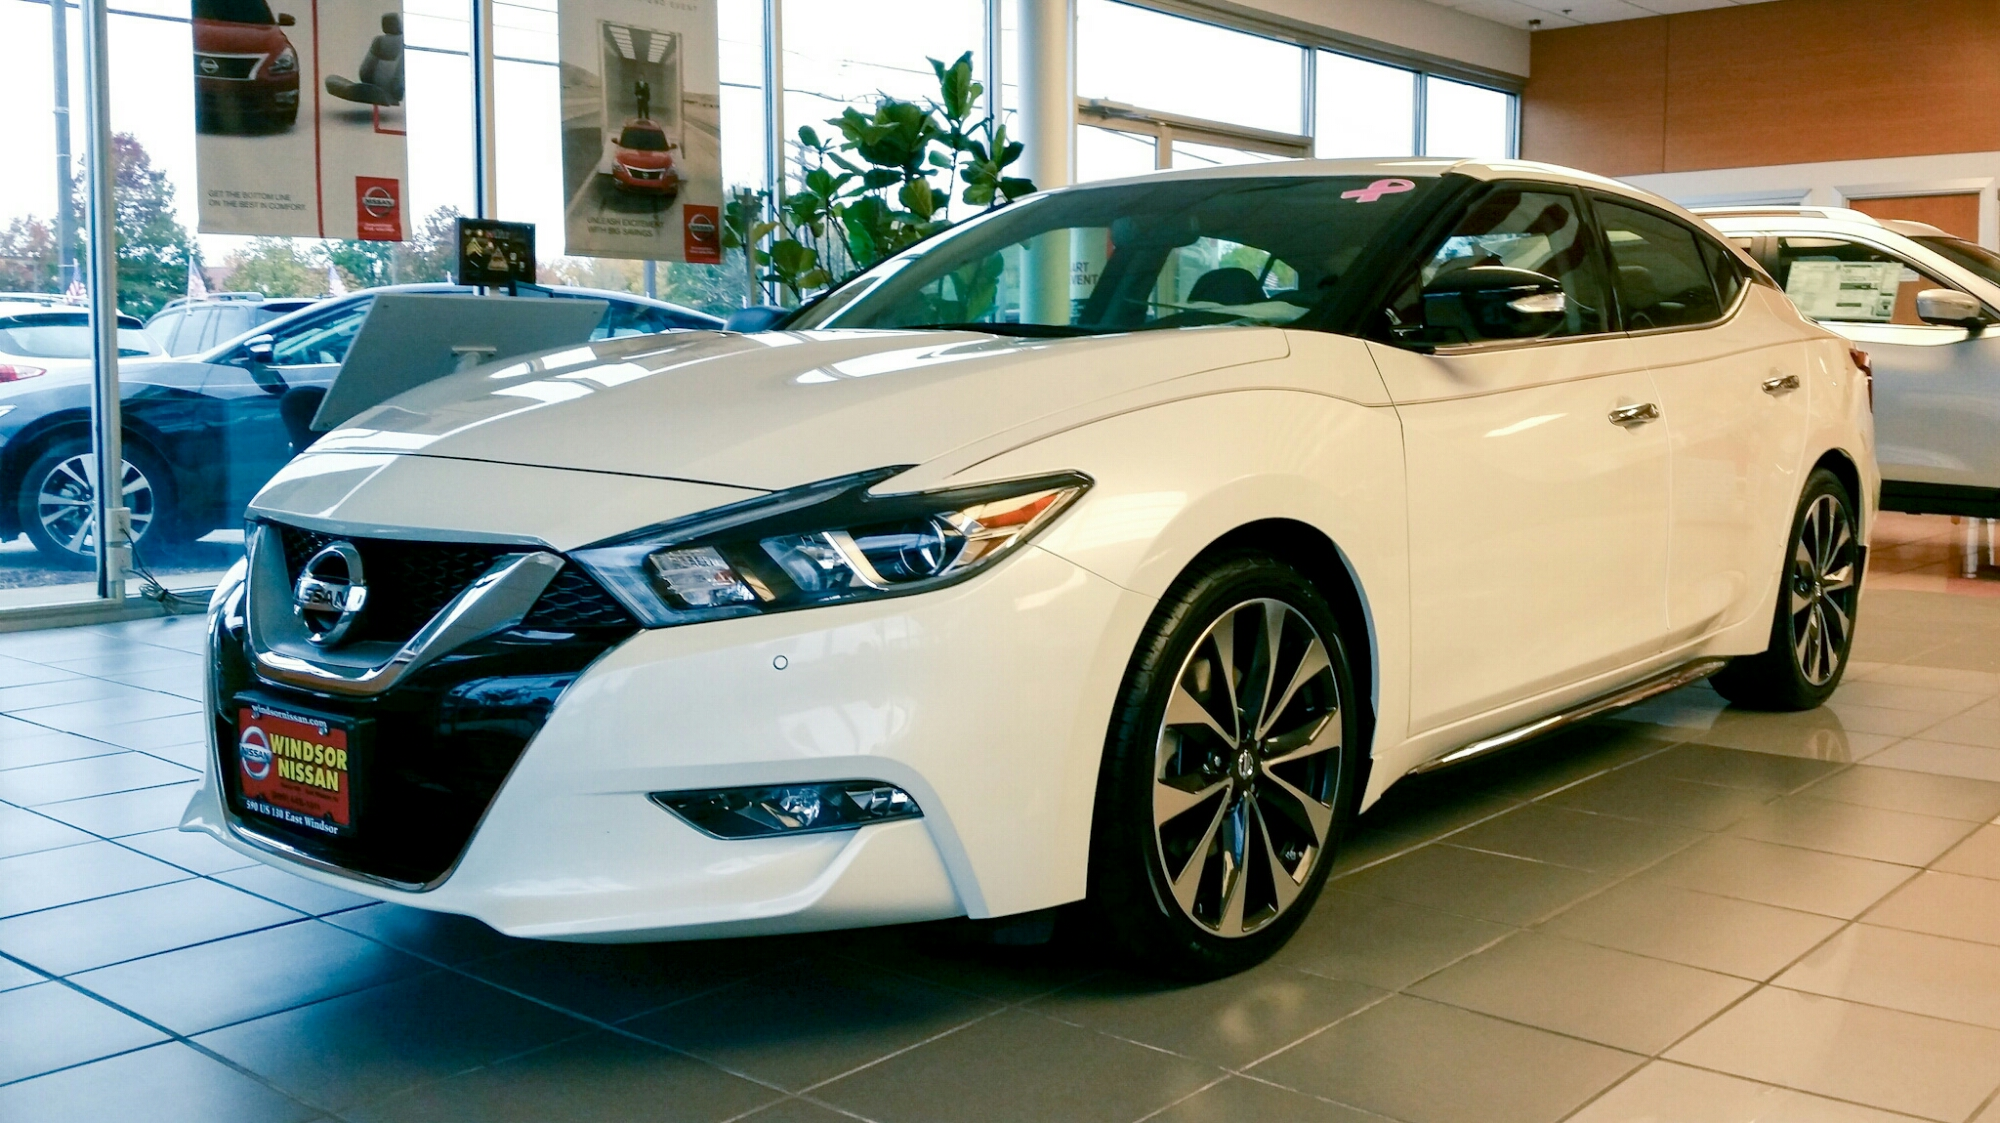 price new york msrp start maxima revealed at news nissan prices in photo gallery